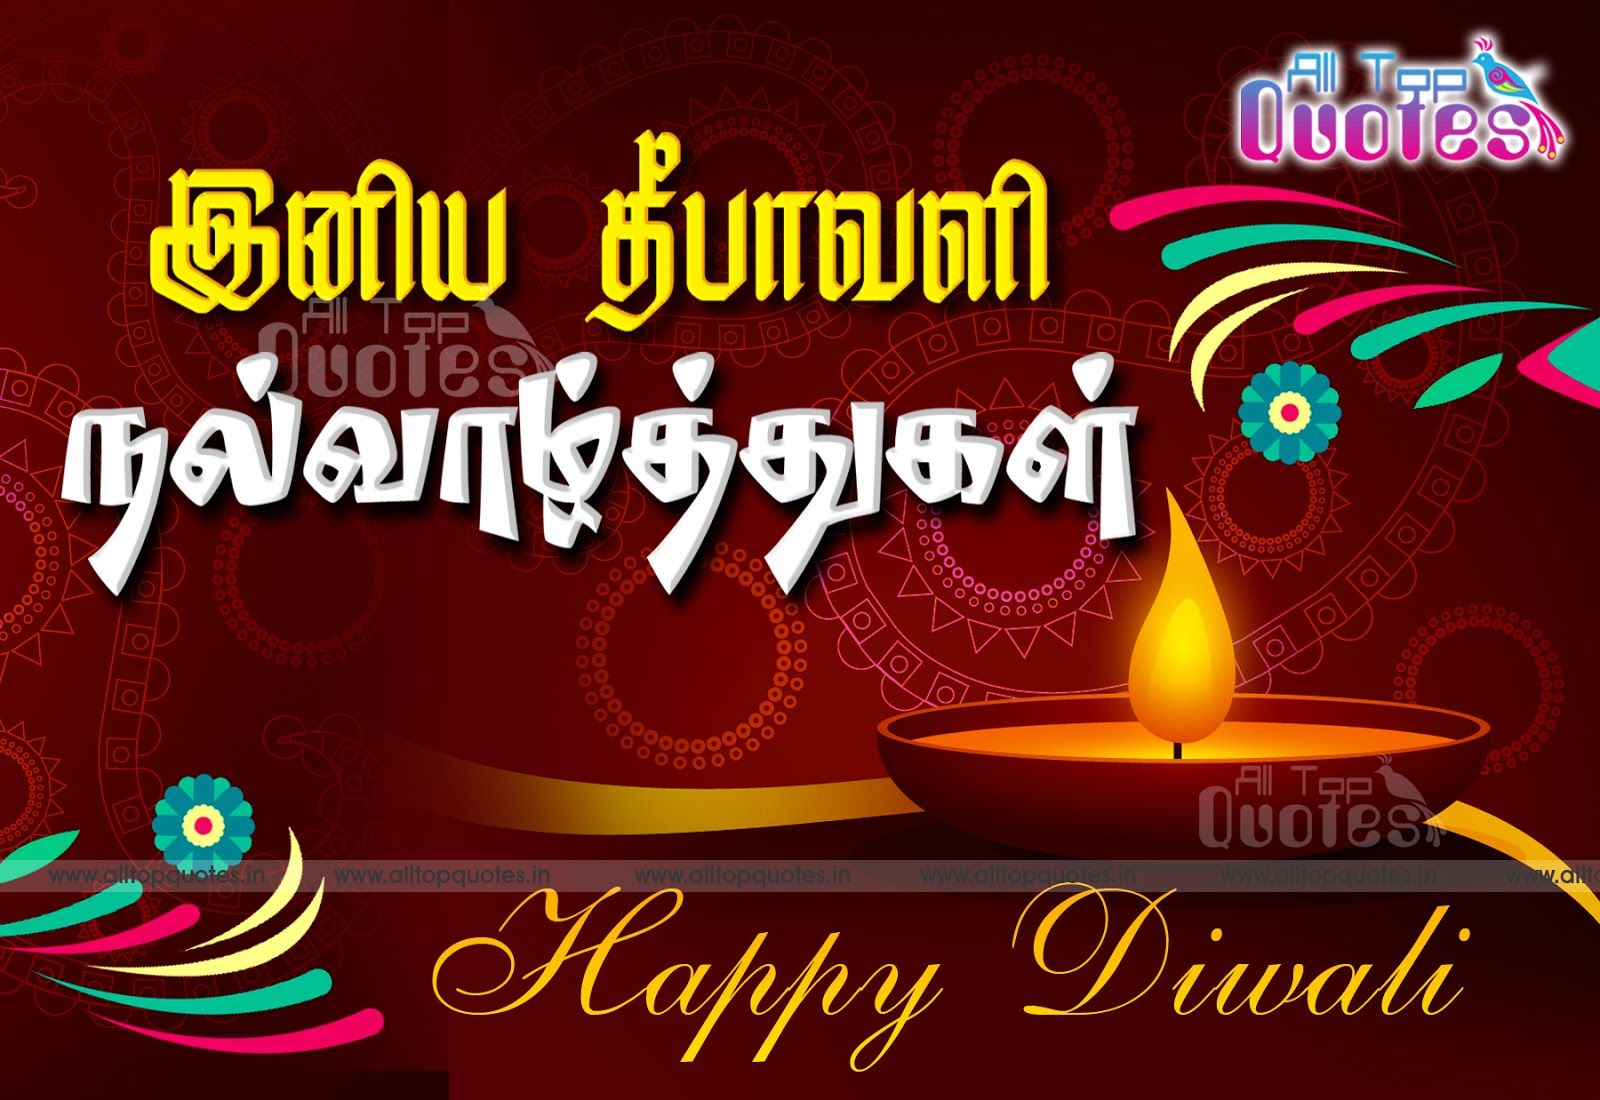 Happy diwali tamil quotes wishes and greetings hd wallpapers happy diwali tamil quotes wishes and greetings hd kristyandbryce Choice Image